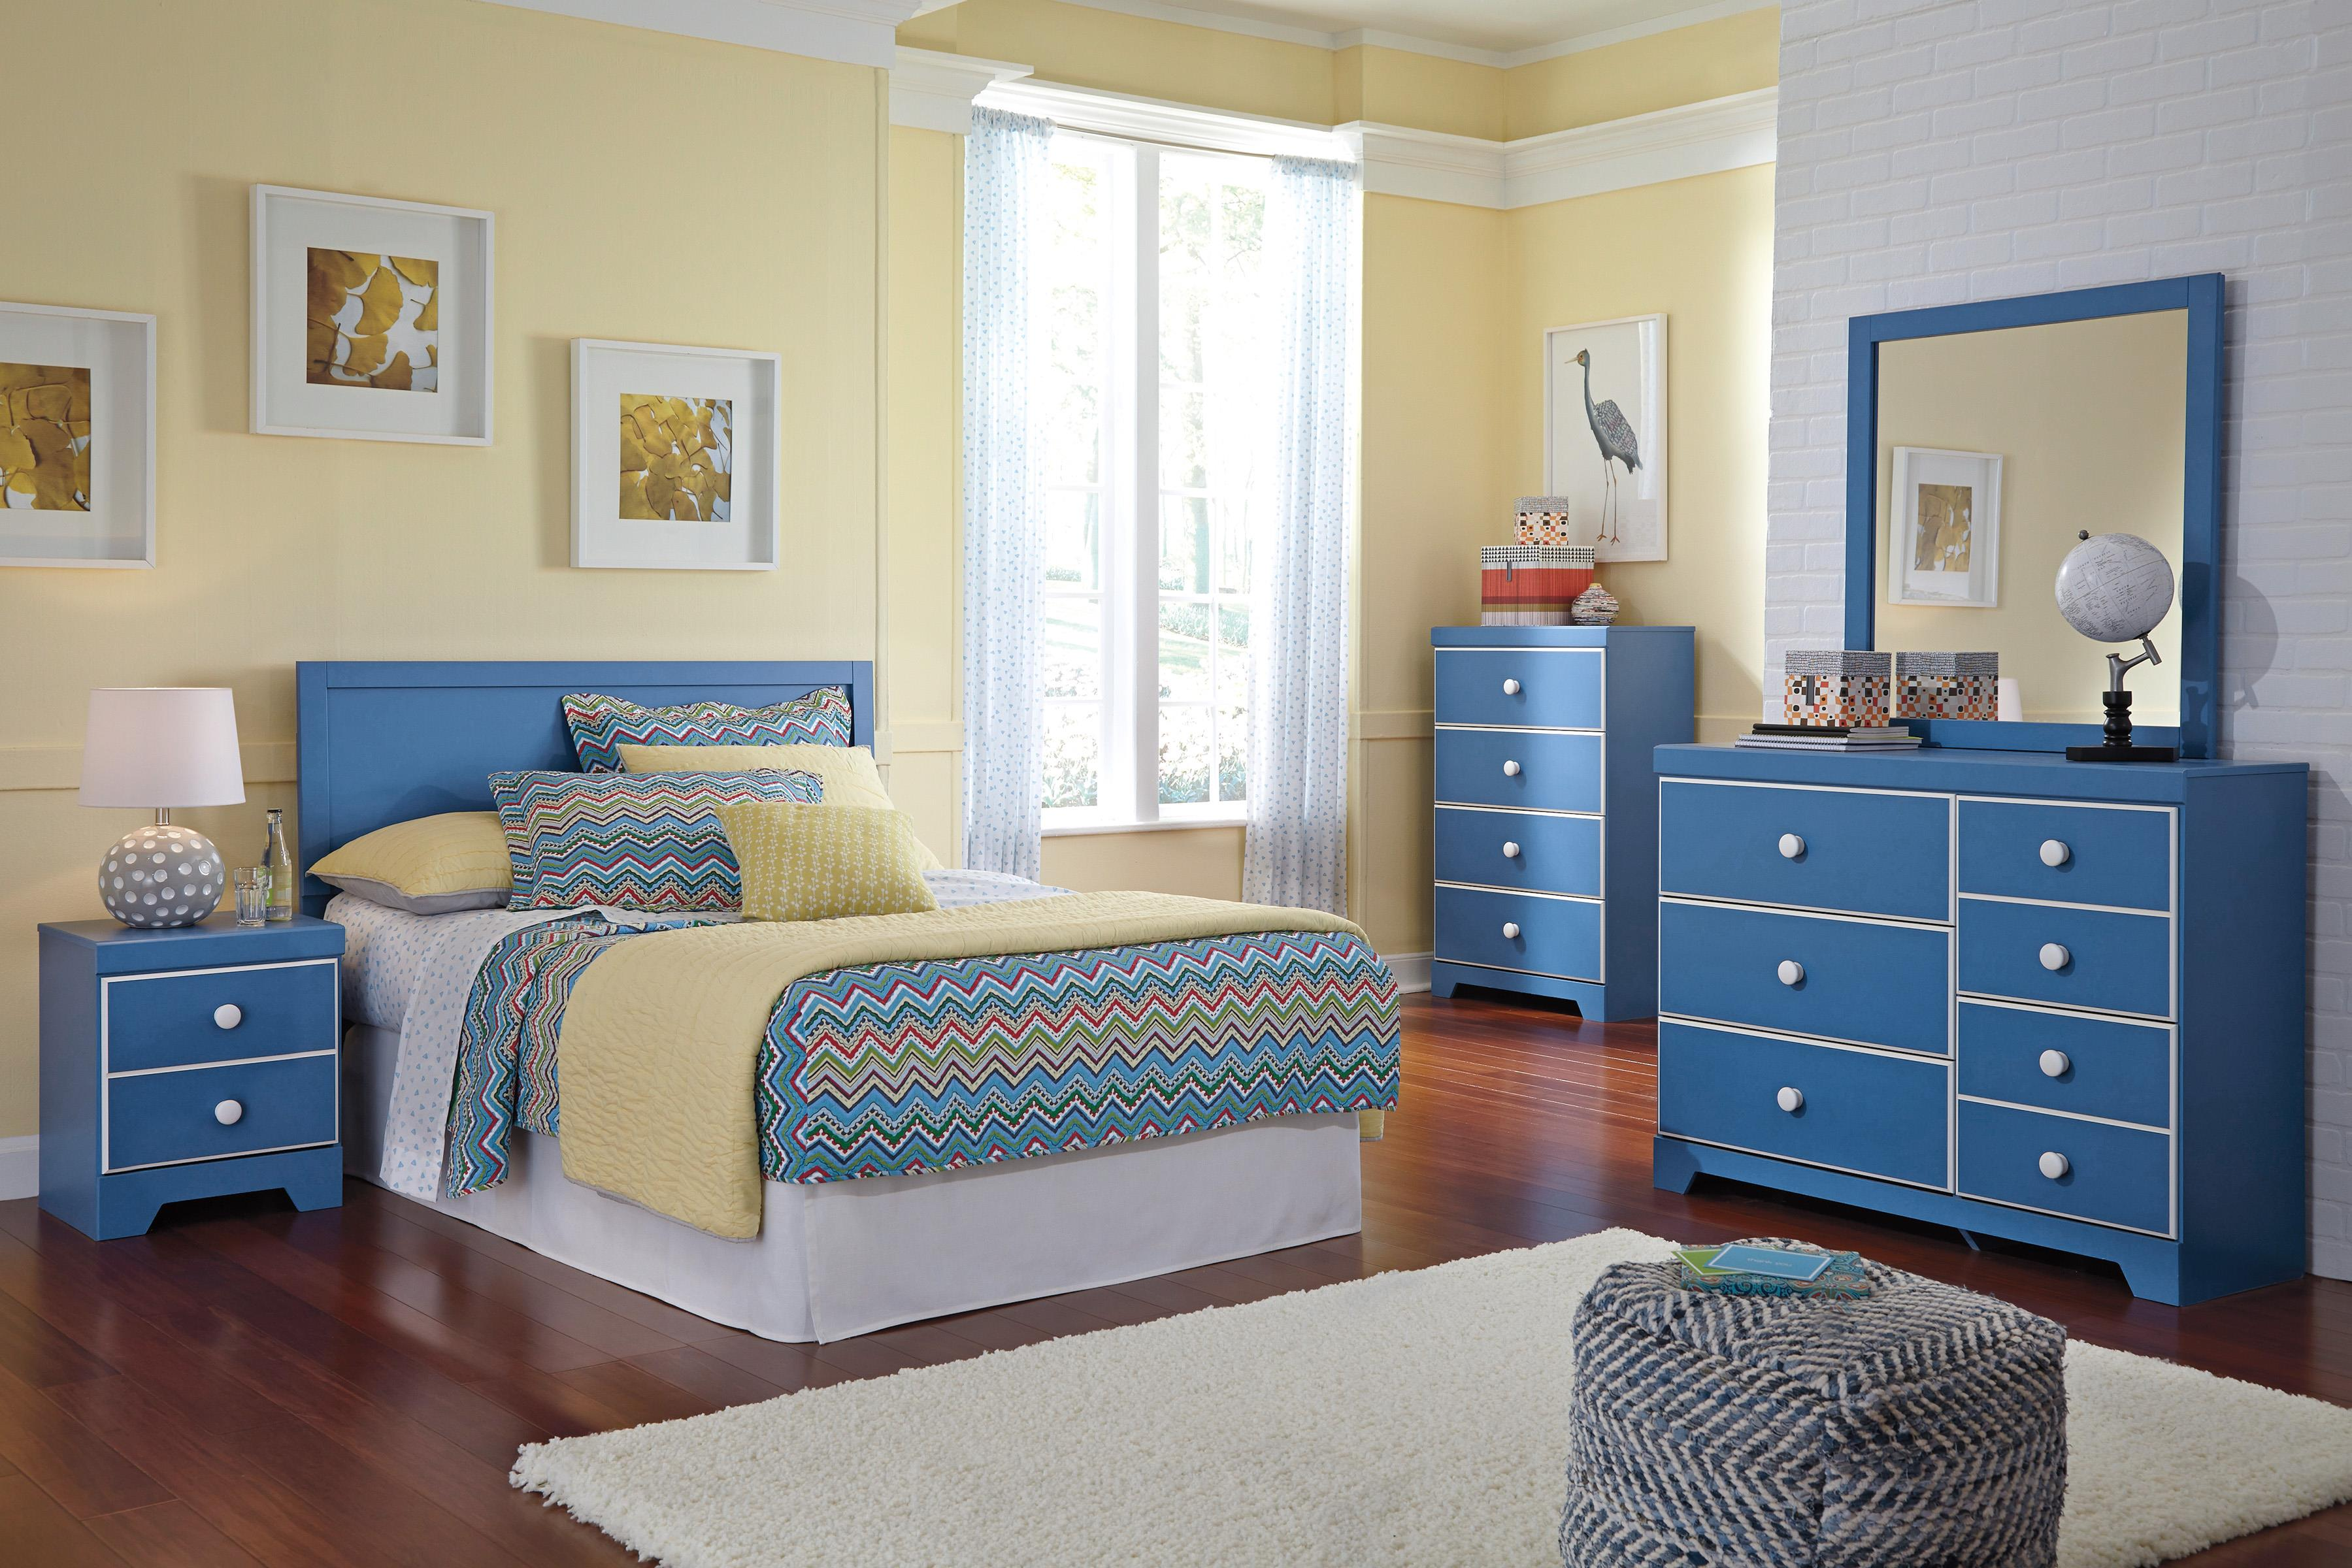 Signature Design by Ashley Bronilly Full Bedroom Group - Item Number: B045 F Bedroom Group 2